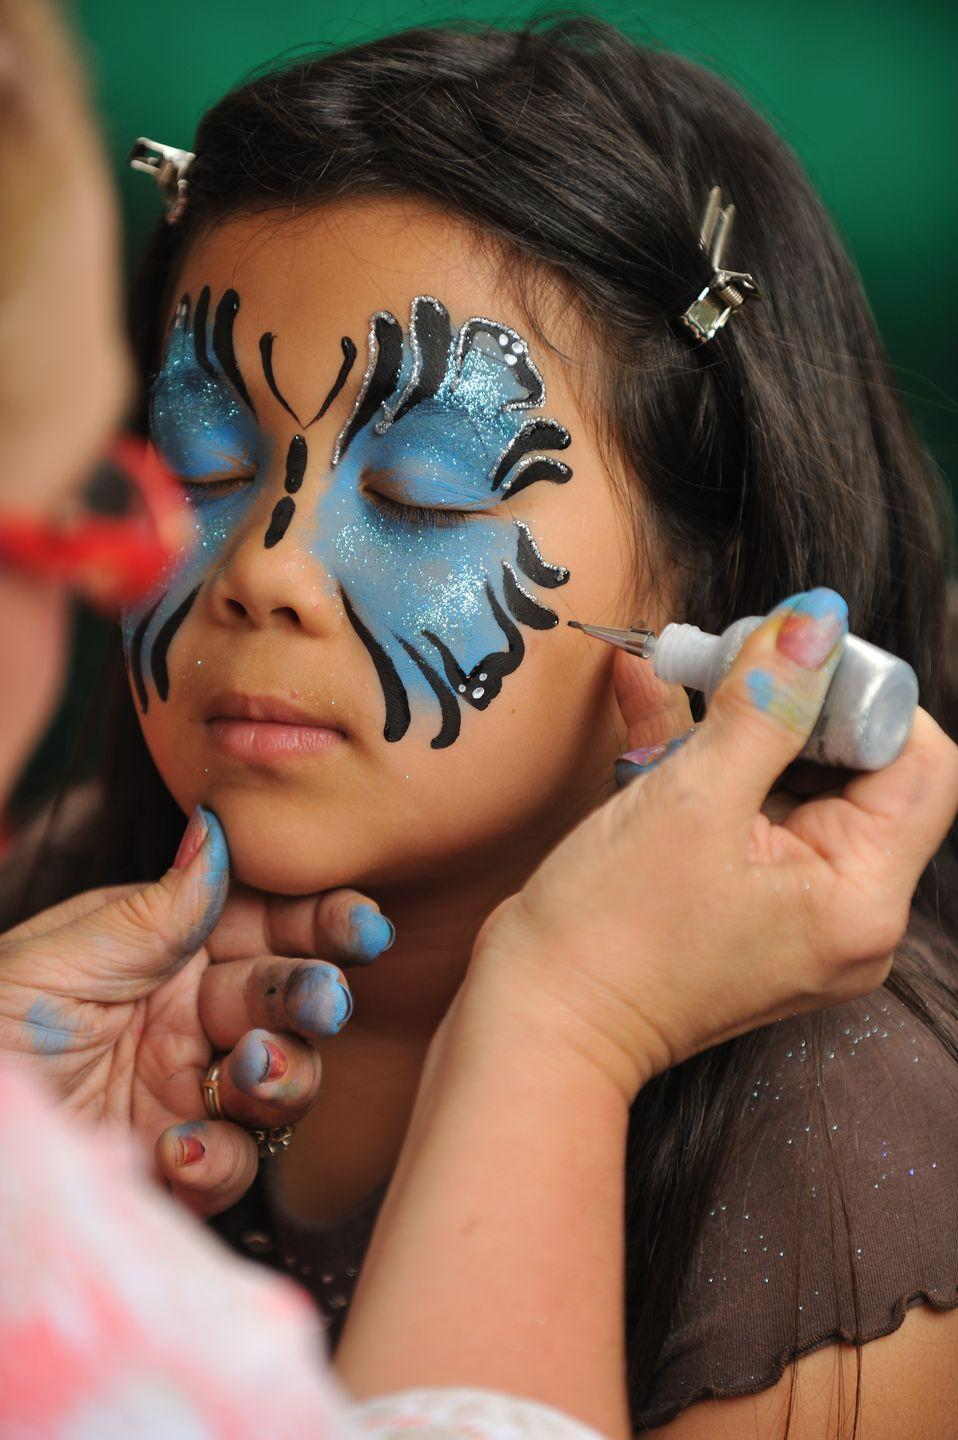 """<p>You don't have to be an artist to have fun with face paint. Ask your kids which design they'd like and do your best to paint it. They can even take turns painting each others' faces if they'd like.</p><p><a class=""""link rapid-noclick-resp"""" href=""""https://www.amazon.com/JOYIN-Non-Toxic-Ultimate-Including-Superbowl/dp/B075FH22G4/?tag=syn-yahoo-20&ascsubtag=%5Bartid%7C10055.g.33796718%5Bsrc%7Cyahoo-us"""" rel=""""nofollow noopener"""" target=""""_blank"""" data-ylk=""""slk:SHOP FACE PAINT"""">SHOP FACE PAINT</a></p>"""